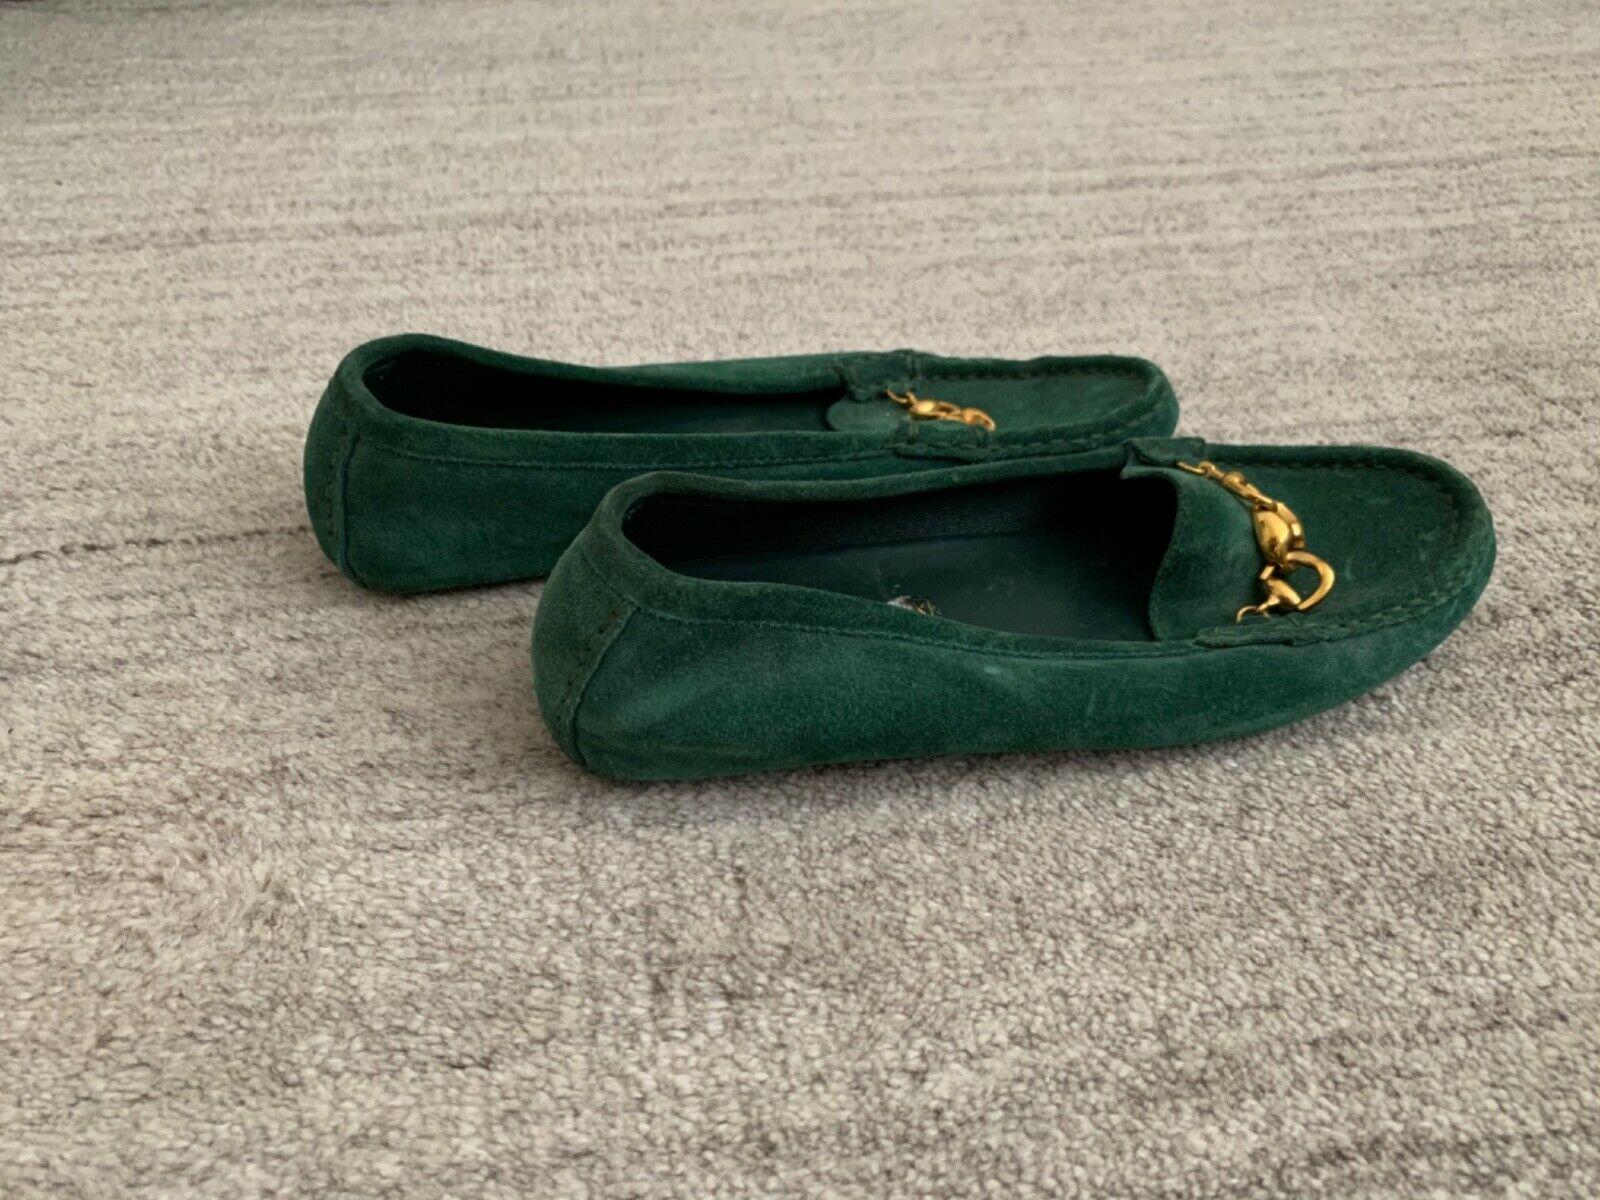 Gucci Suede Green Loafers - image 5